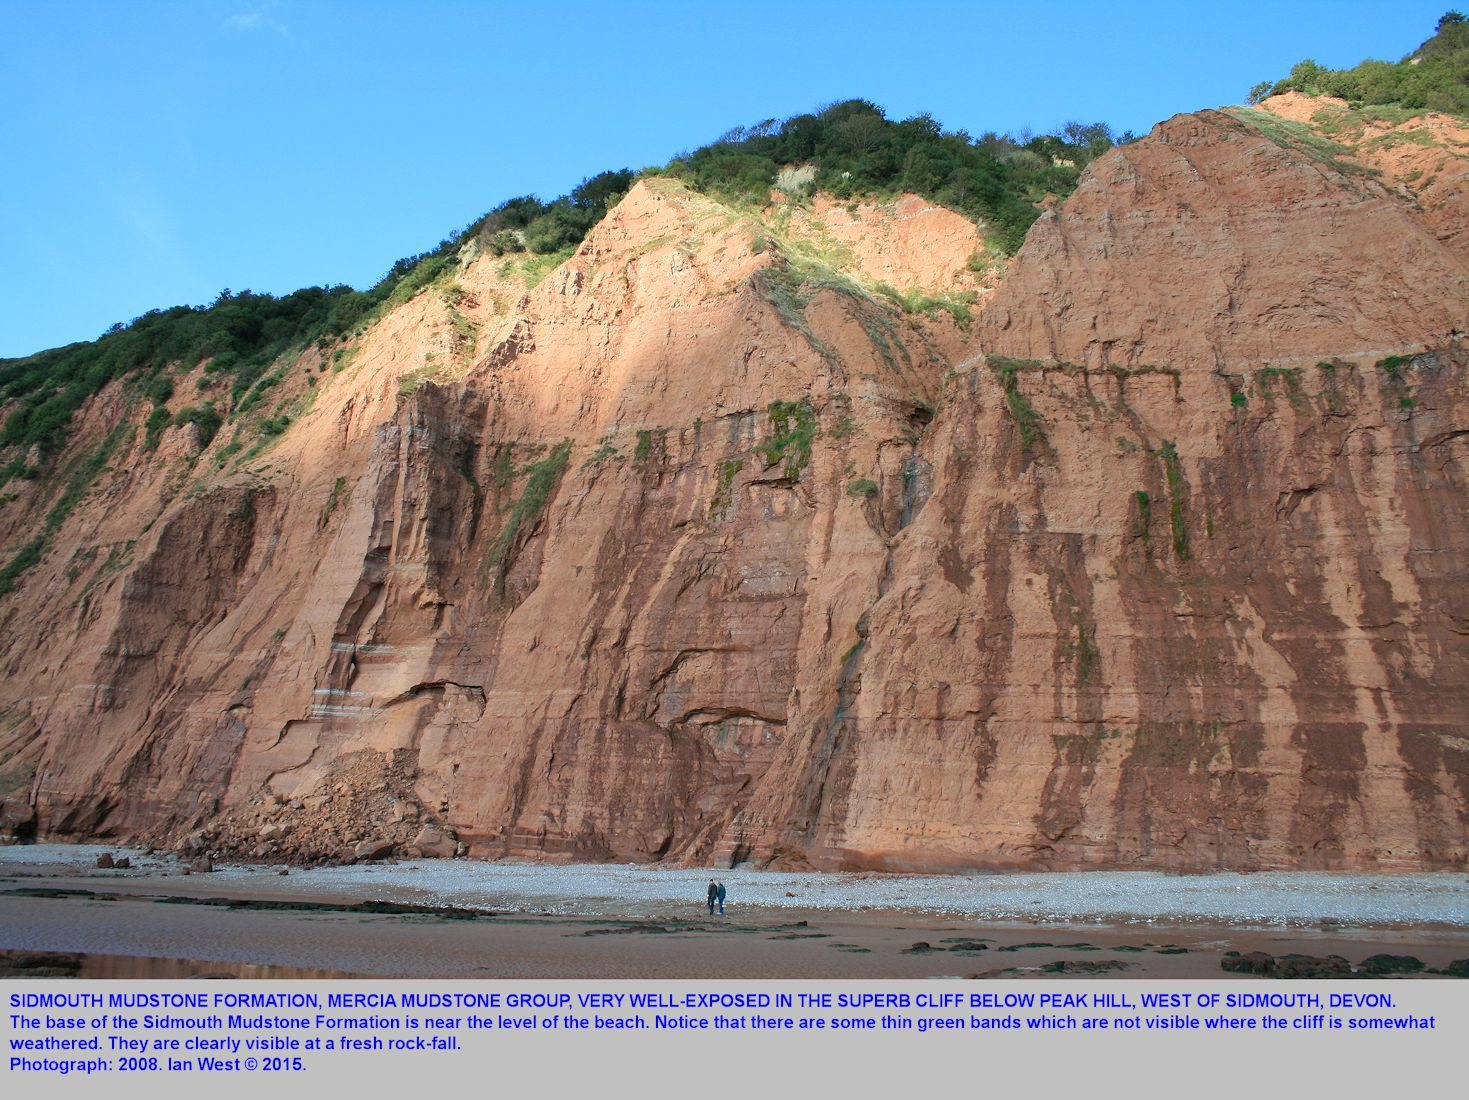 A high cliff of Sidmouth Mudstone Formation, Mercia Mudstone Group, Trias, at Peak Hill, west of Sidmouth, Devon